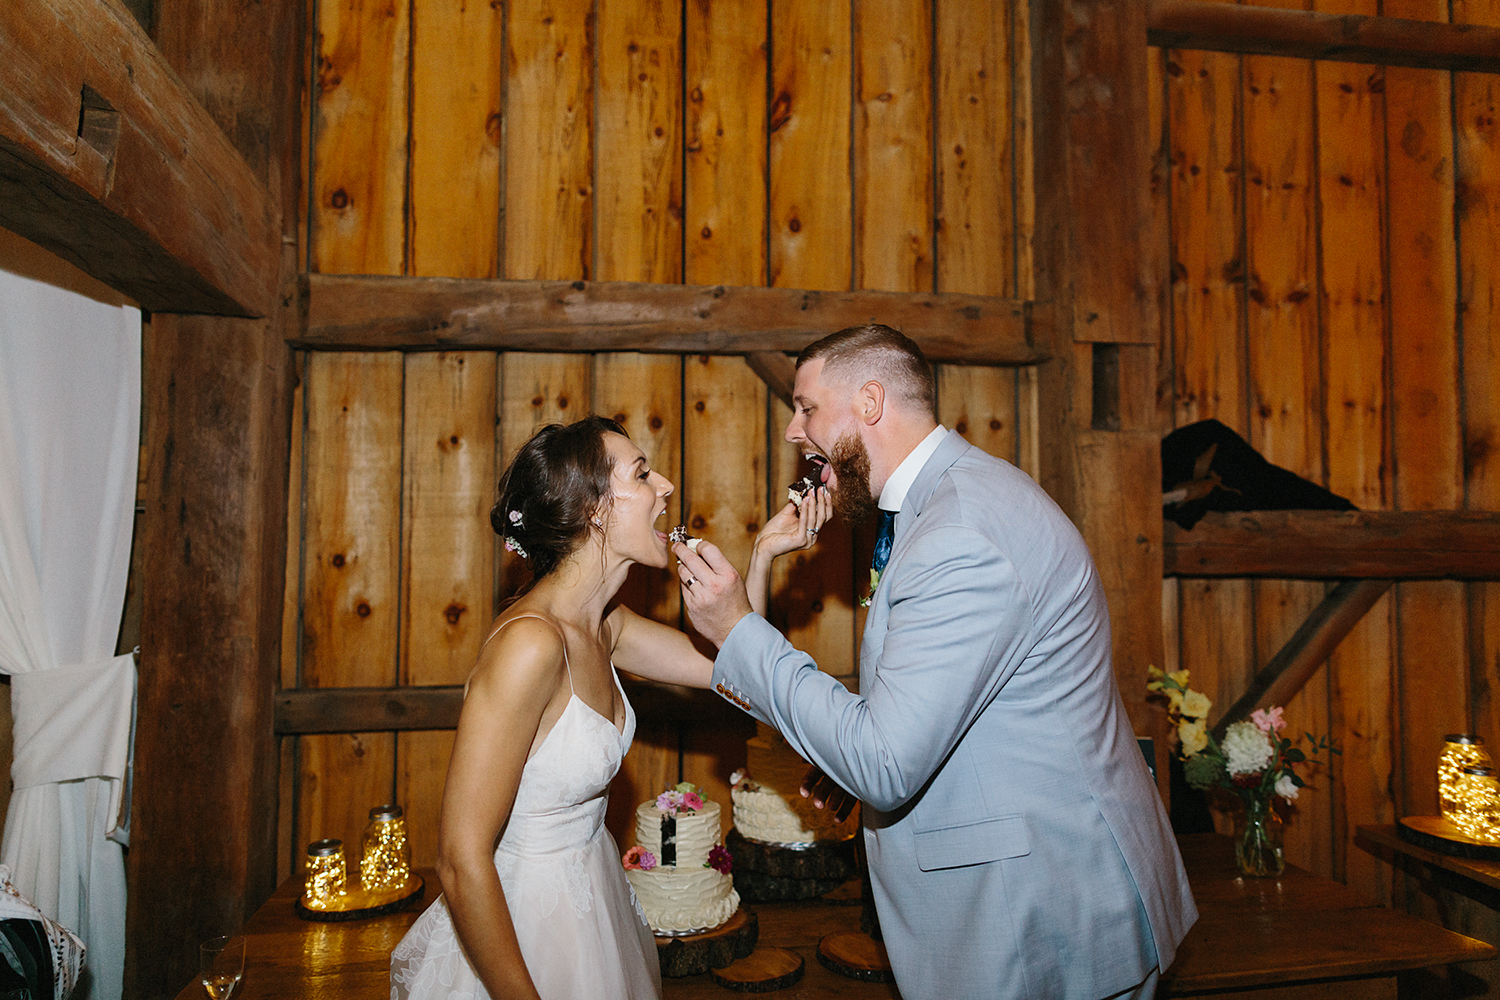 Candid-Toronto-Wedding-Photographers-Photojournalistic-Wedding-Photography-in-Toronto-Ryanne-Hollies-bradford-barn-best-dancing-photos-string-lights-party-time-bride-and-groom-cake-cutting-diy-cute-moments.jpg